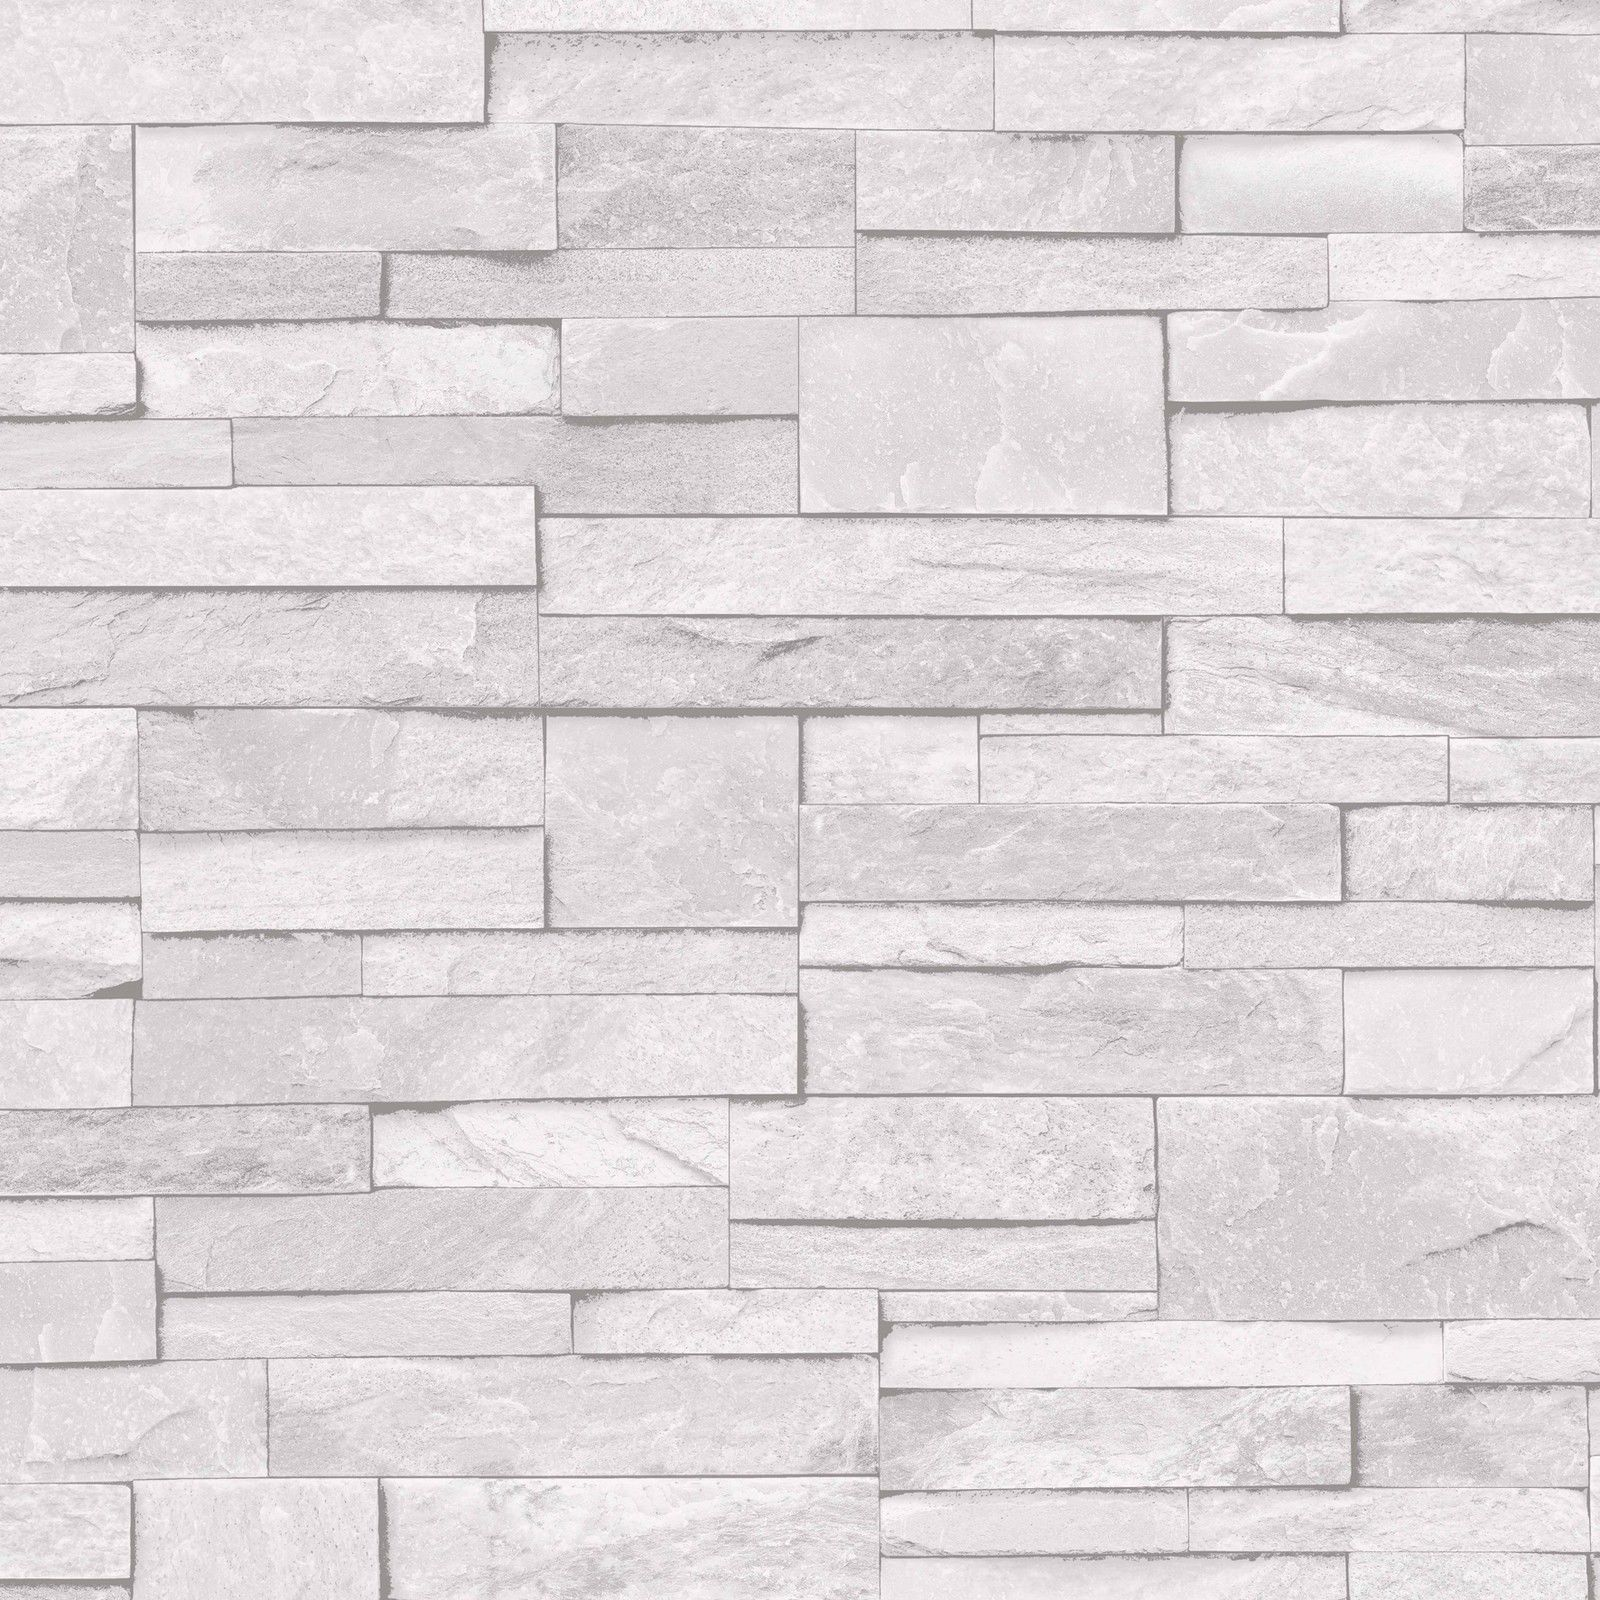 Details About 3d Slate Stone Brick Effect Wallpaper Washable Vinyl Stone Sand Grey Look Wallpaper Papel De Parede Lavavel Tapetes